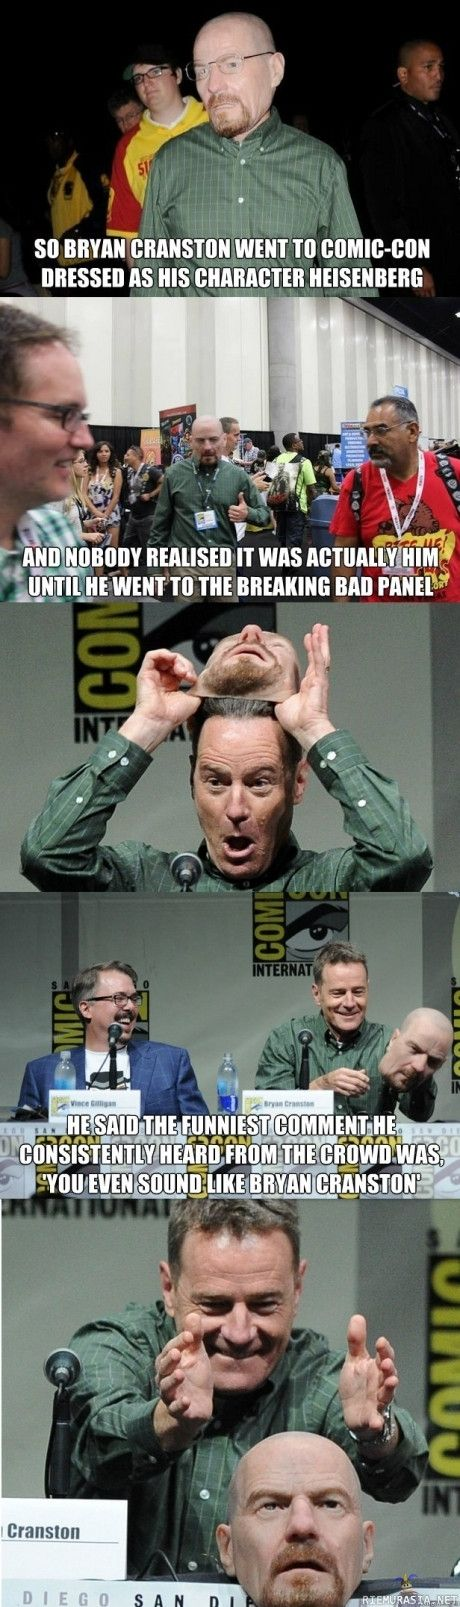 Bryan Cranston in comic con- this dude is such a great guy!